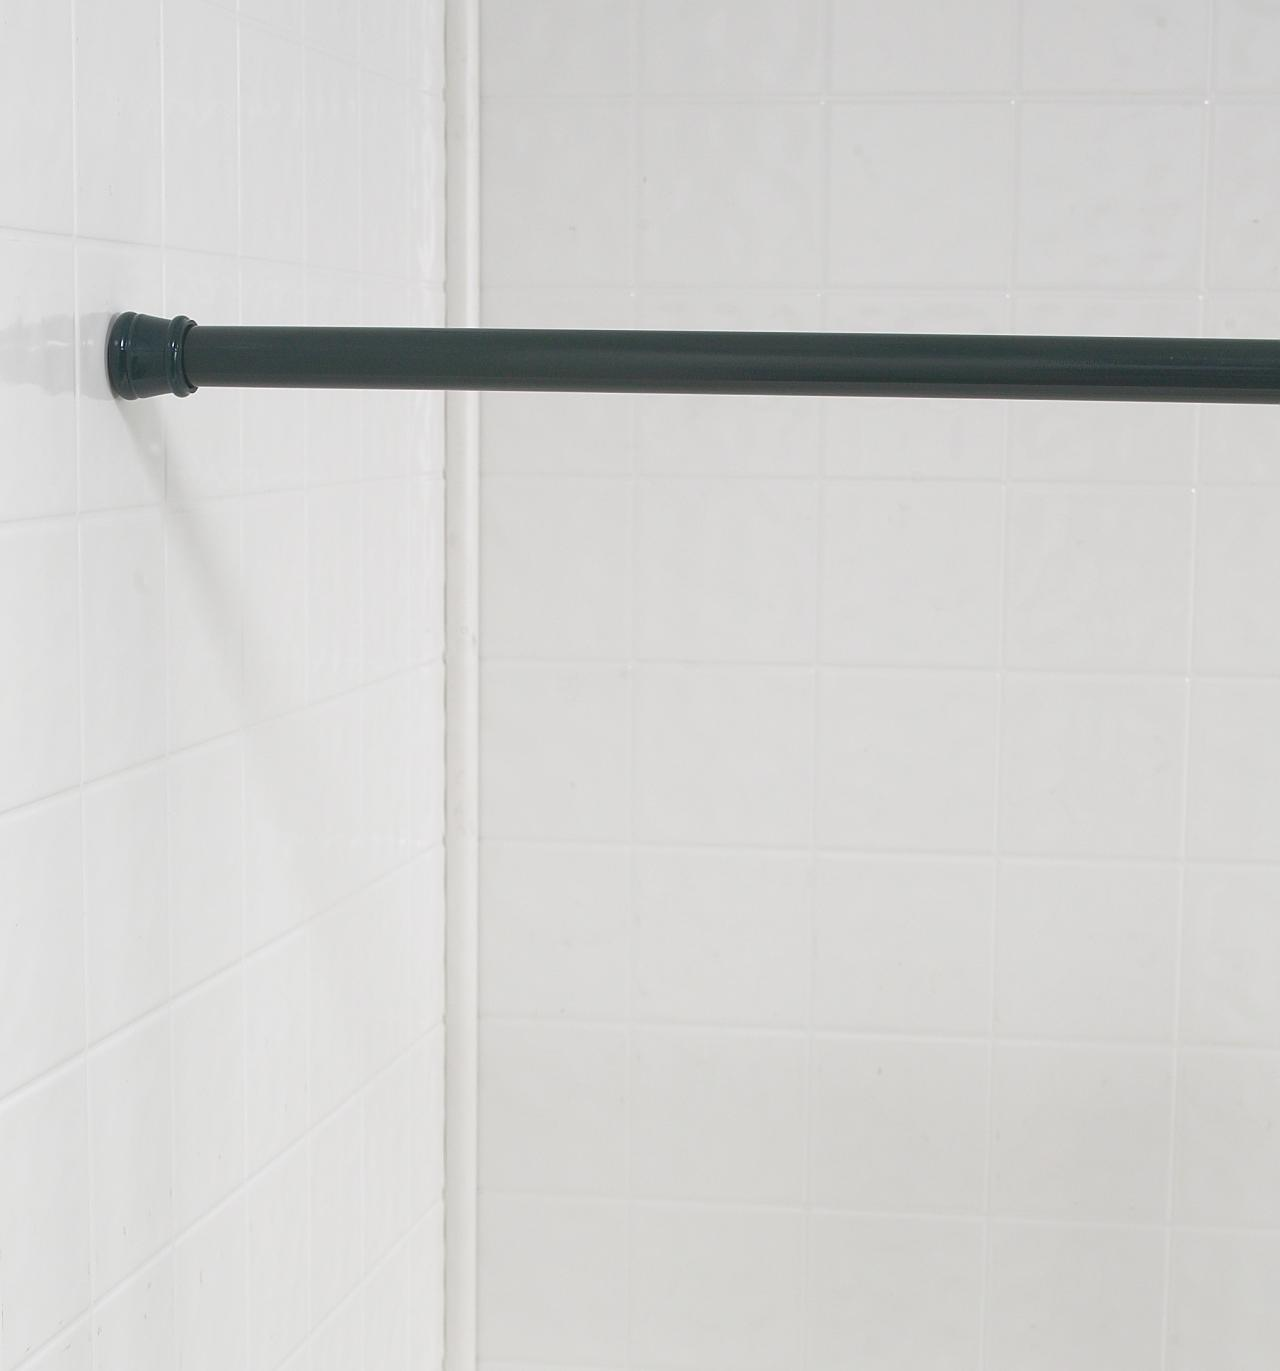 Fullsize Of Tension Rod Curtains